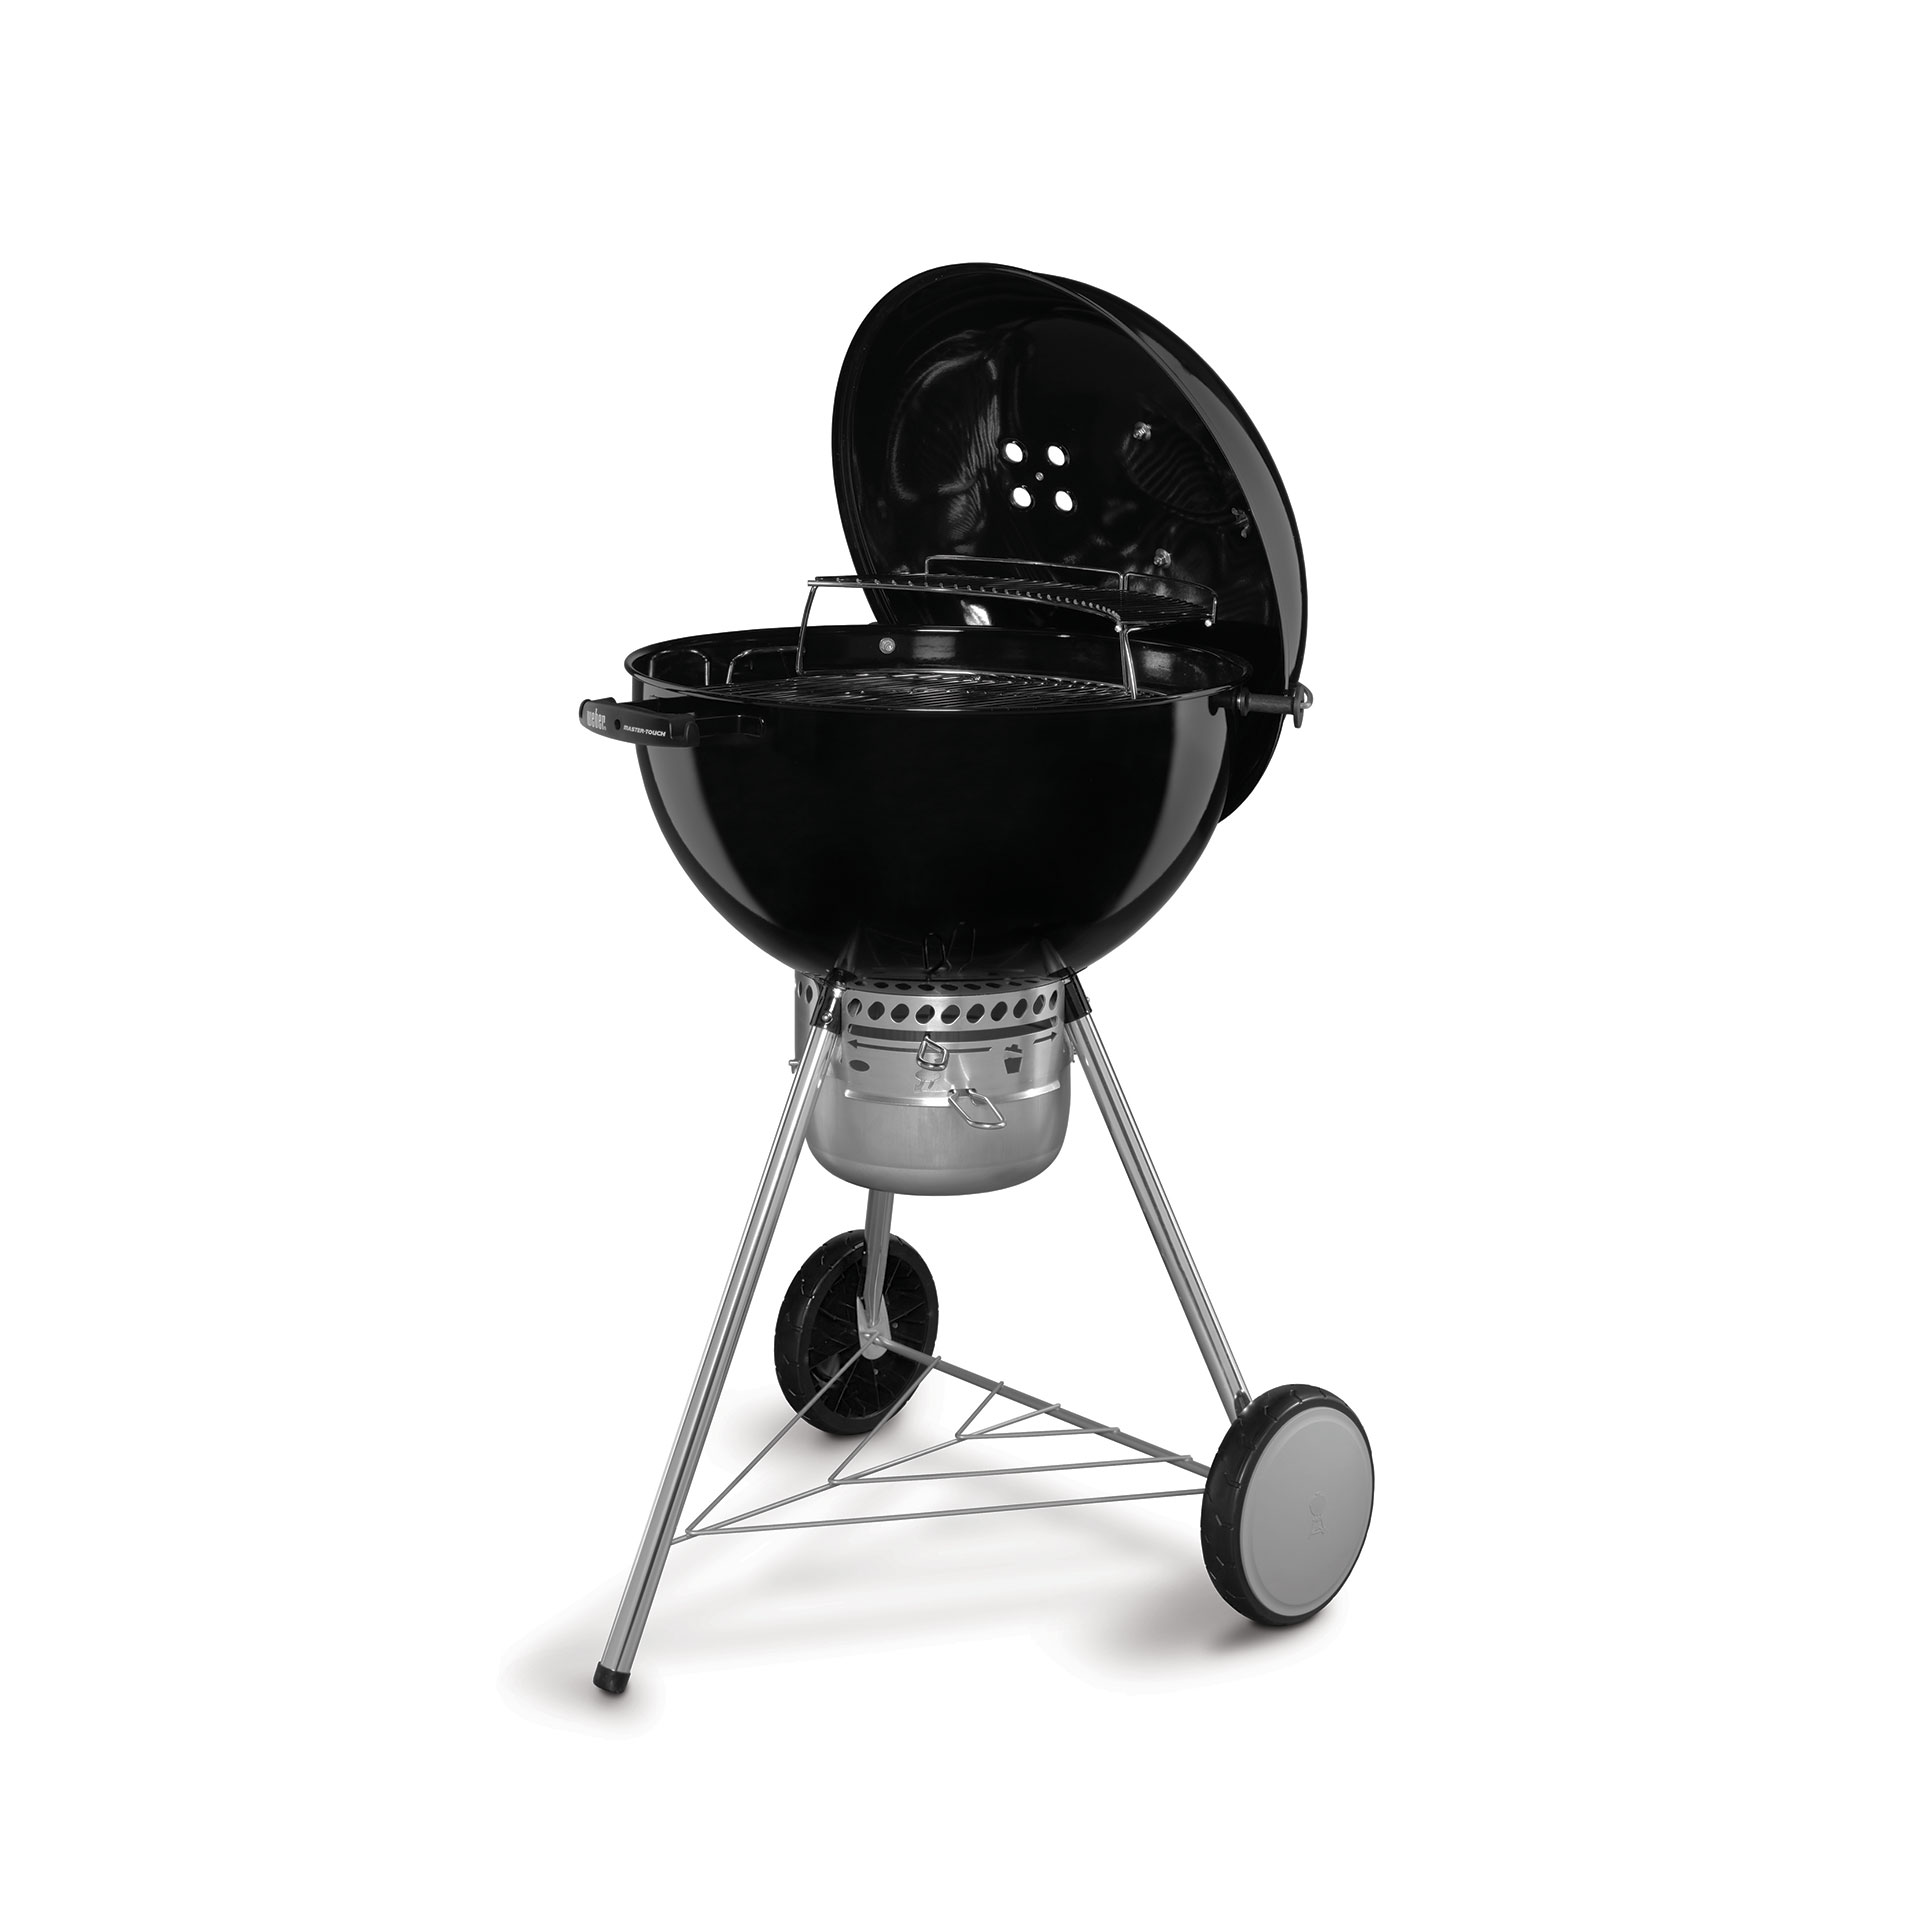 Weber 22 master touch charcoal grill leisure living for Weber master touch